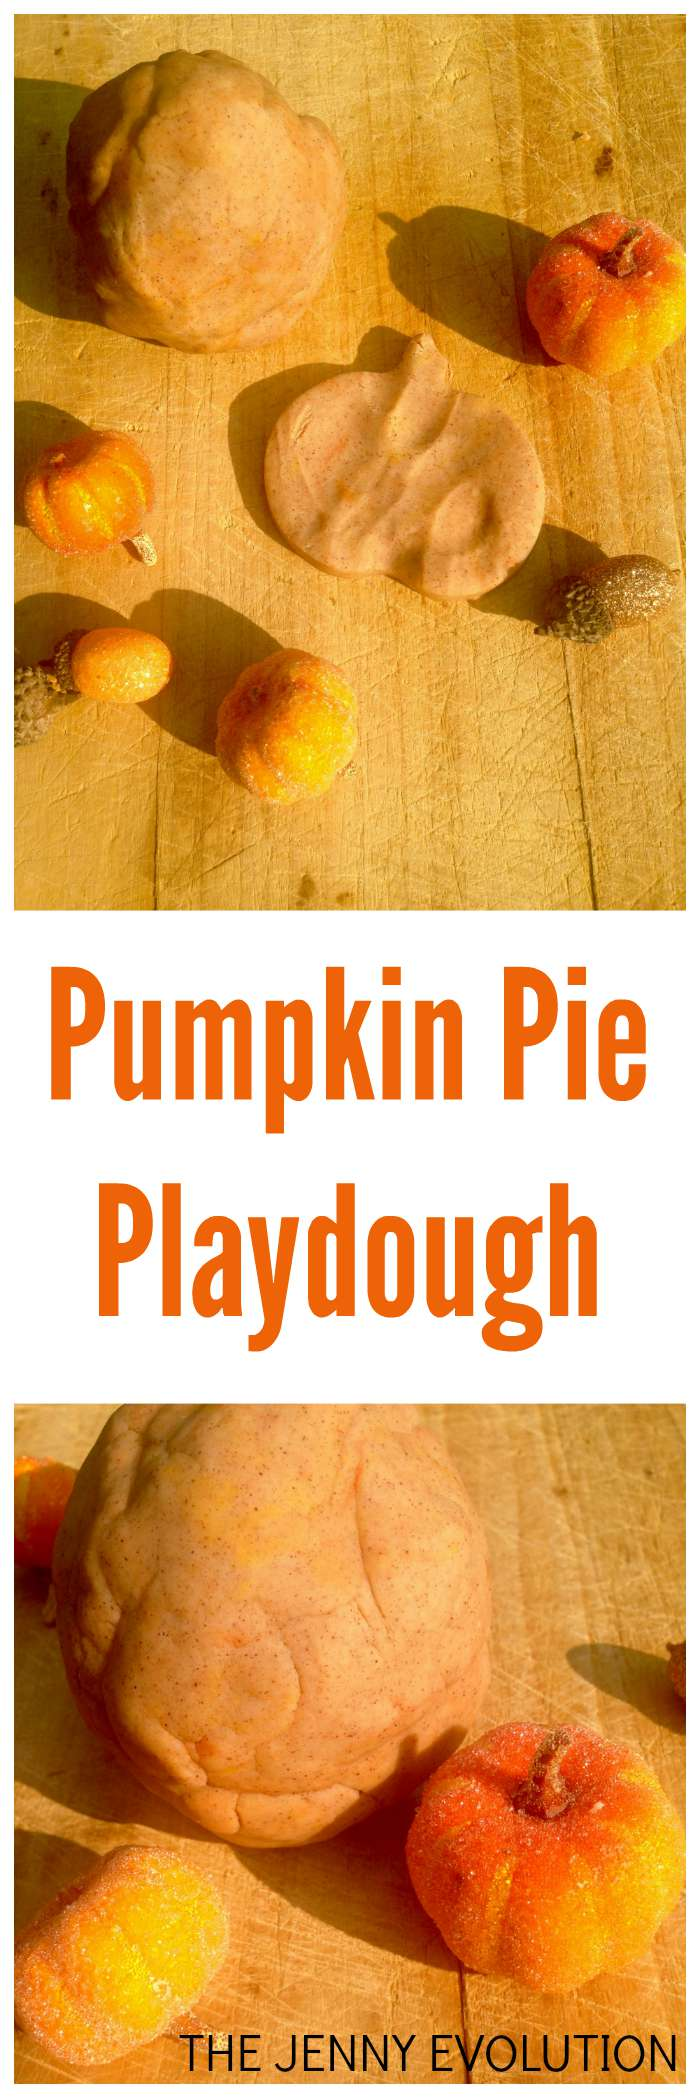 Pumpkin Pie Playdough Recipe | The Jenny Evolution